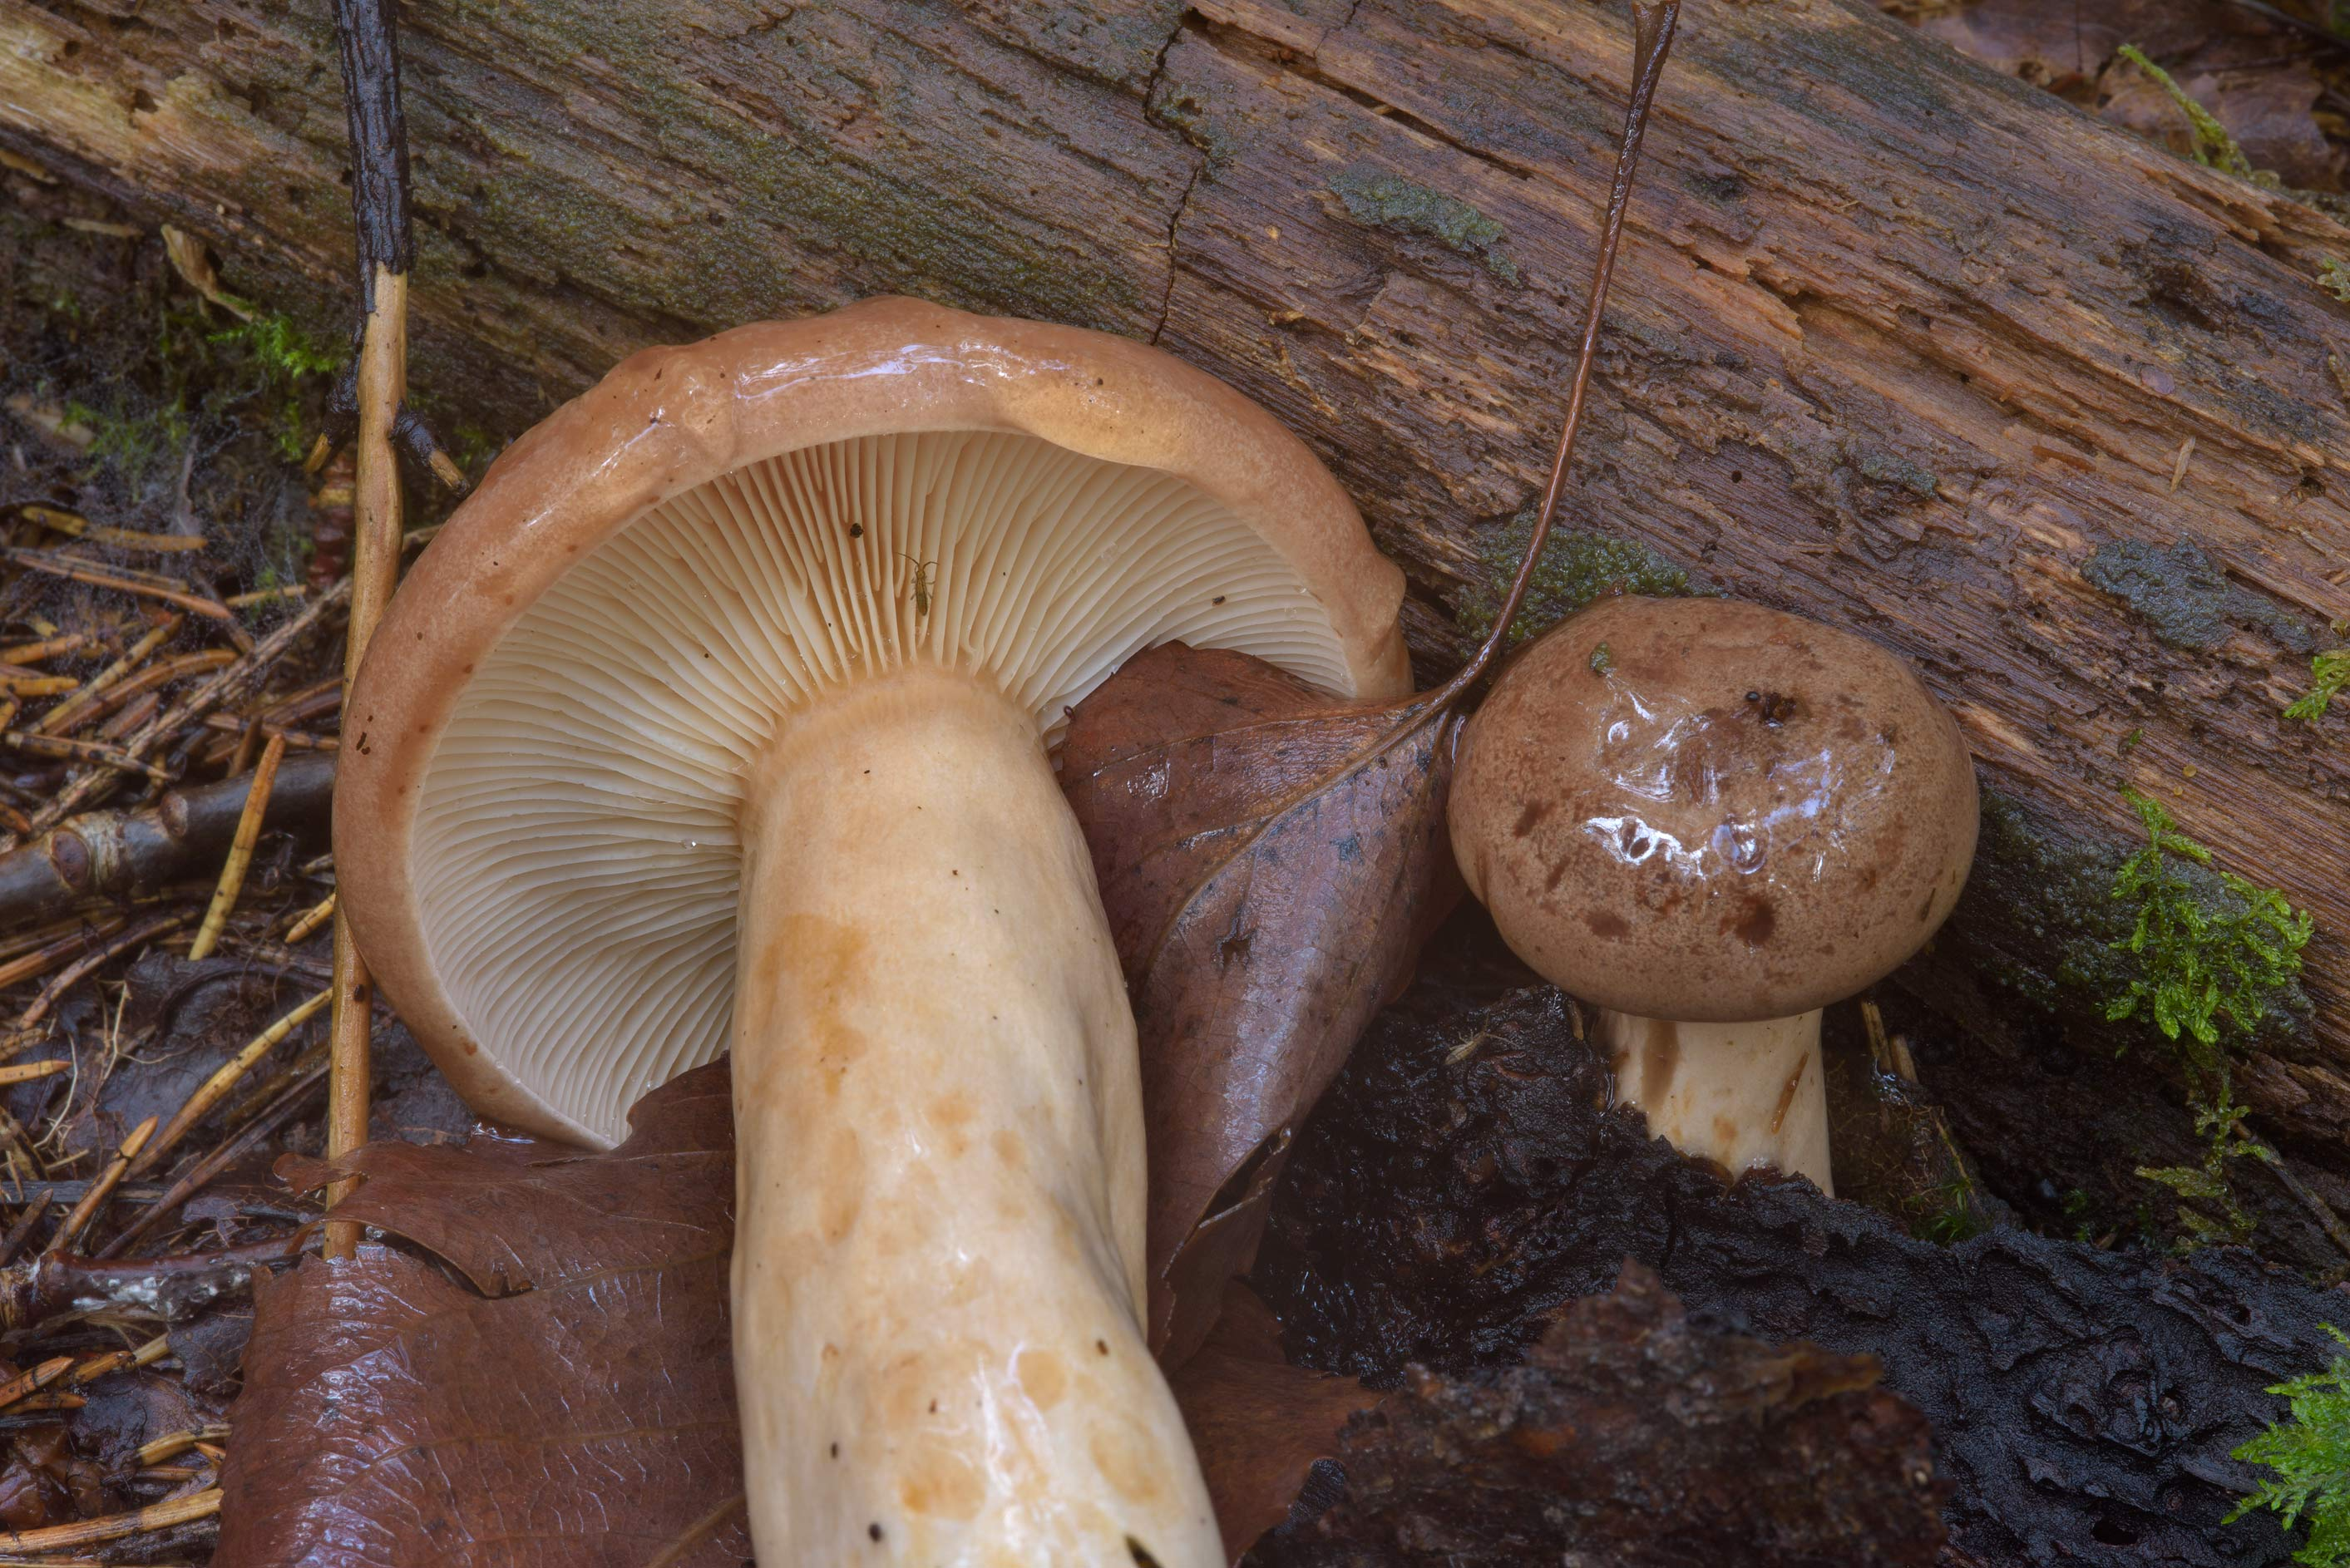 Northern milk-cap mushrooms (Lactarius trivialis...north-west from St.Petersburg, Russia